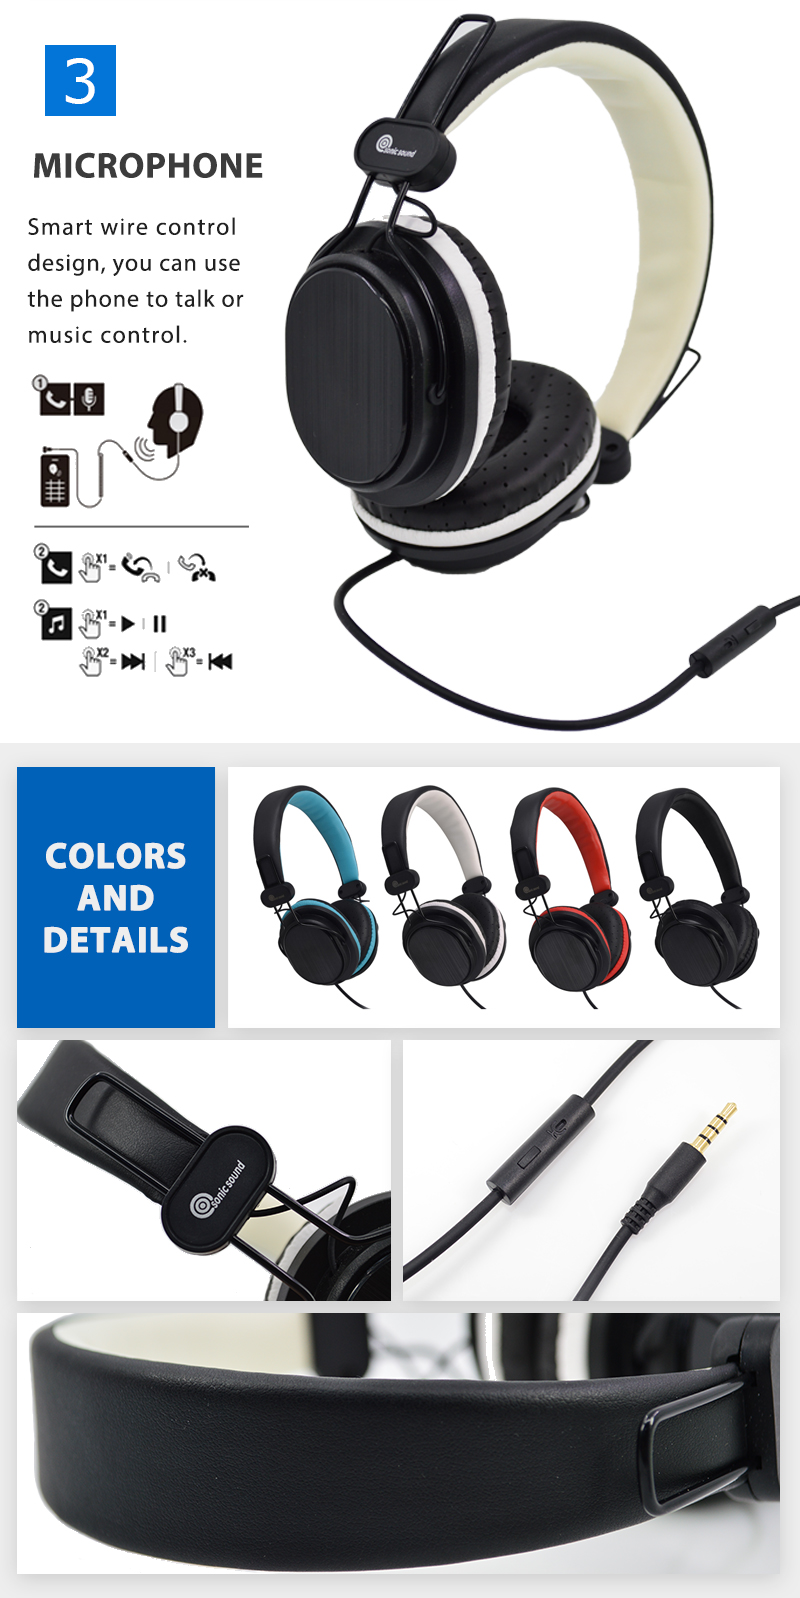 Headphone Android Microphone Guangzhou Headset Frends Customized Deep Bass  Gaming Earphone - Buy Gaming Earphone,Headphone Android,Guangzhou Headset